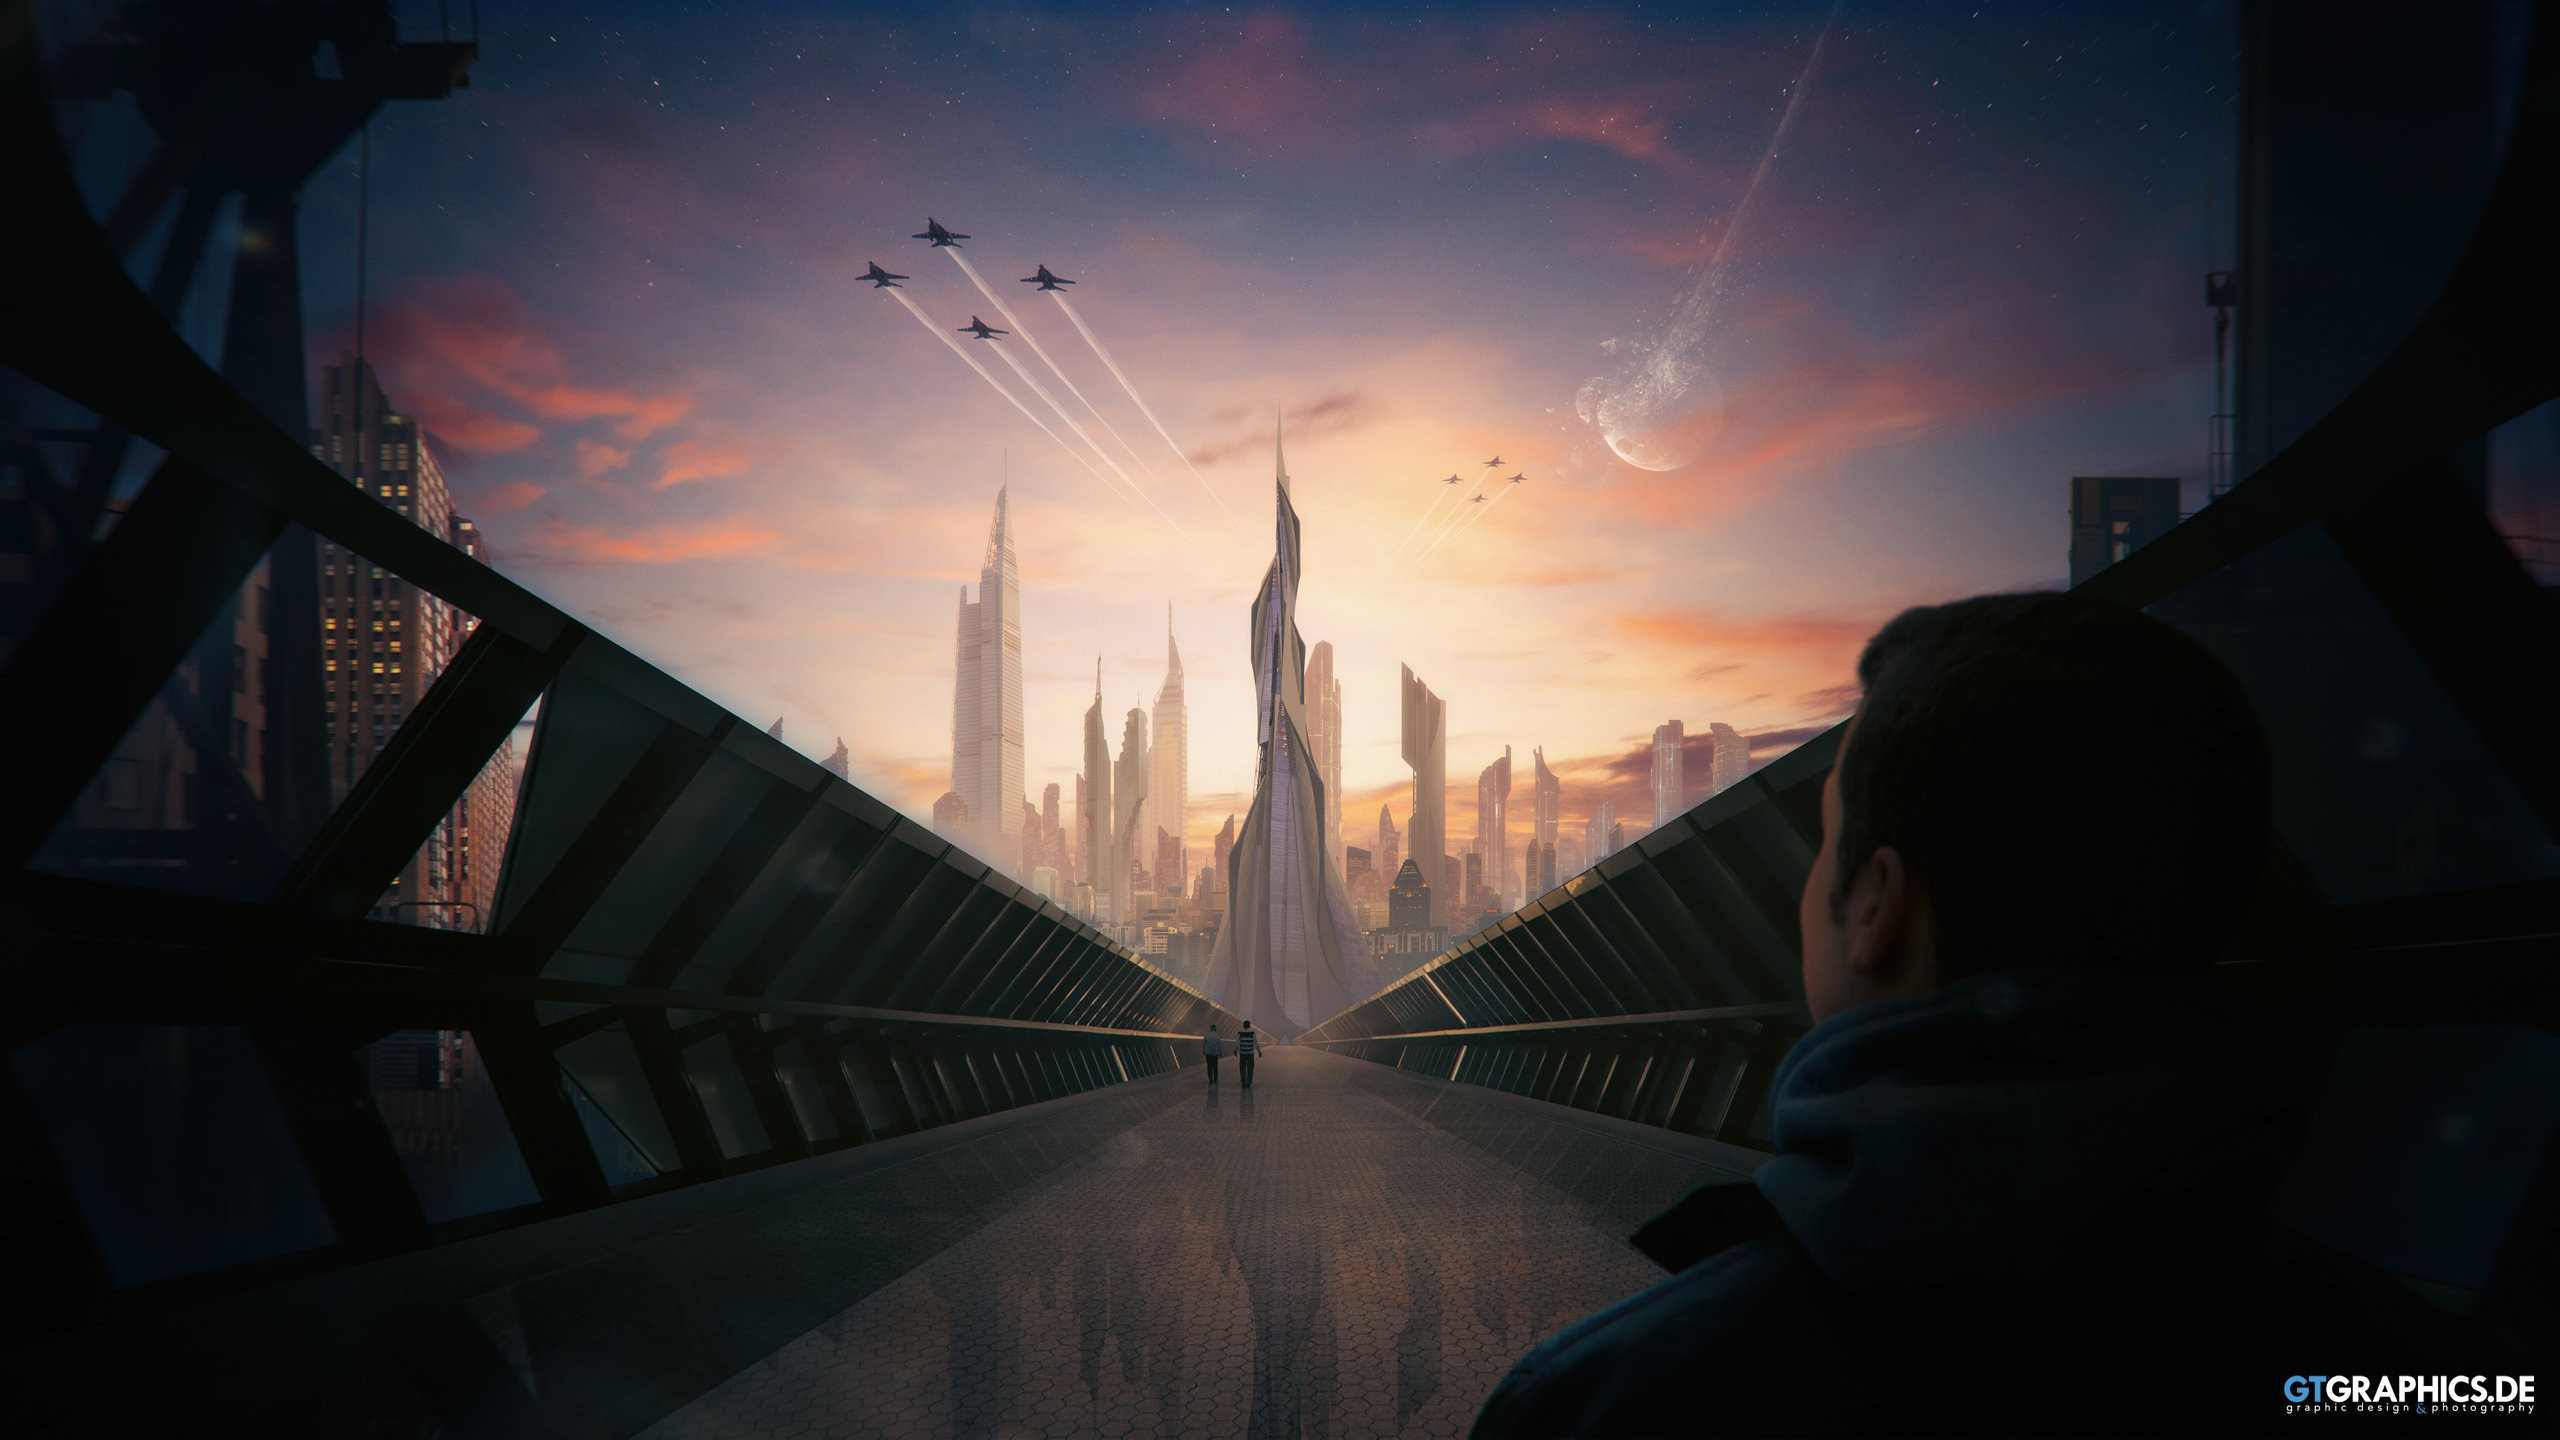 Futuristic City Concept Wallpapers Hd Wallpapers Id 19458